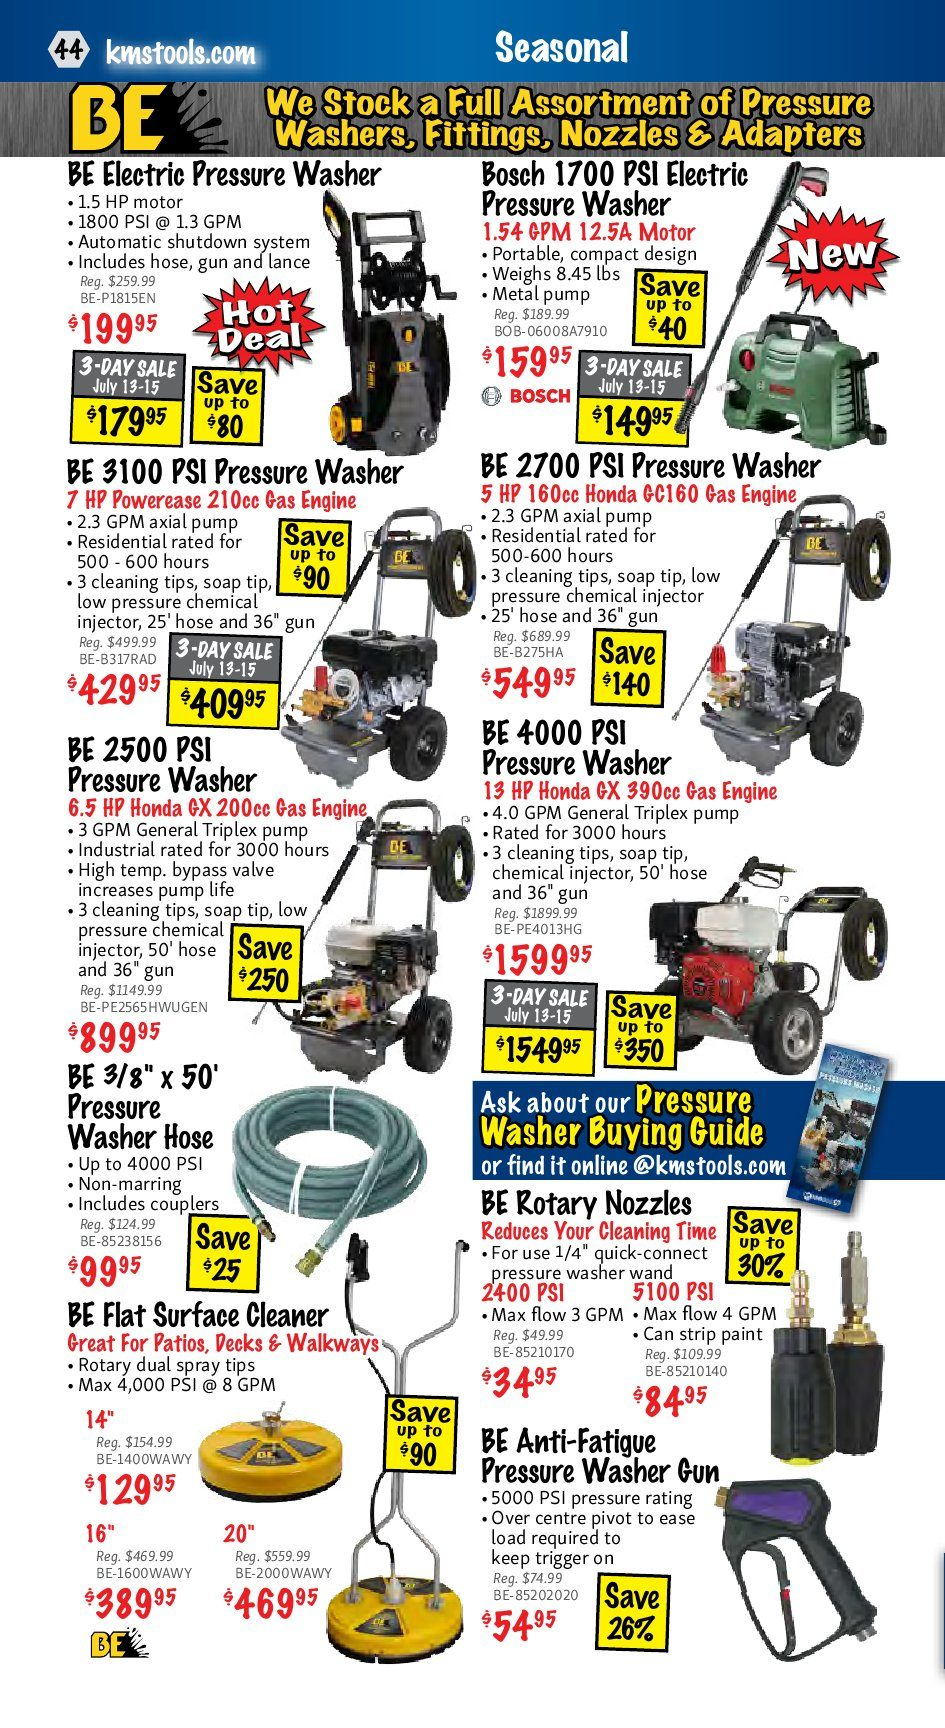 Kms Tools Weekly Flyer Power Tool Sale Jul 1 31 Use Toggle Switch 20amp Back And Side Wired Singlepole 81200 W